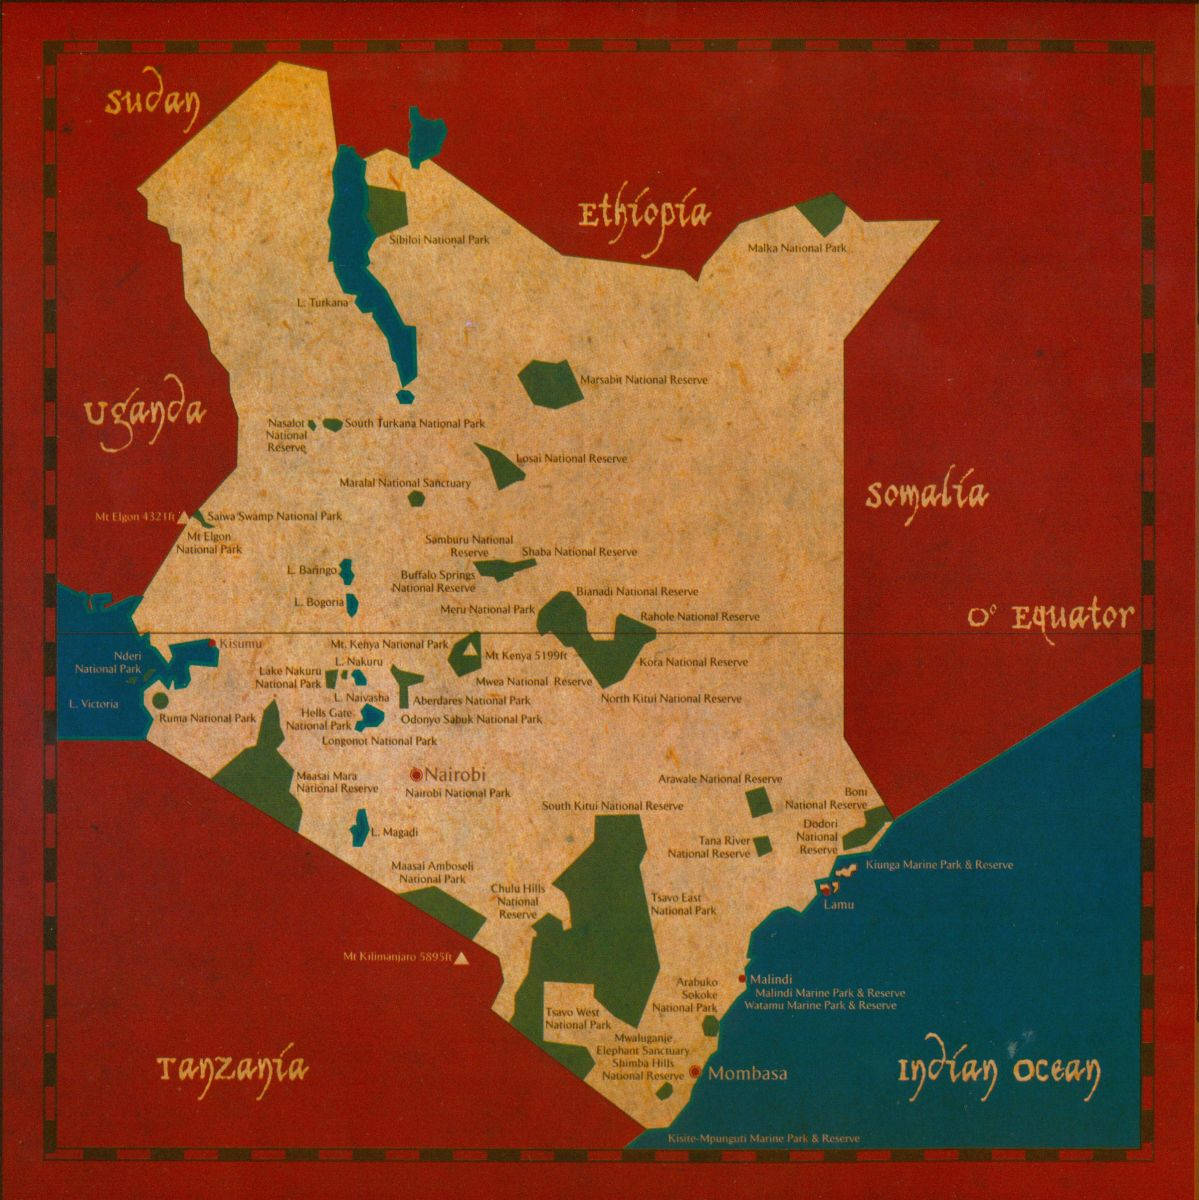 Kenya – Kenya Tourist Attractions Map